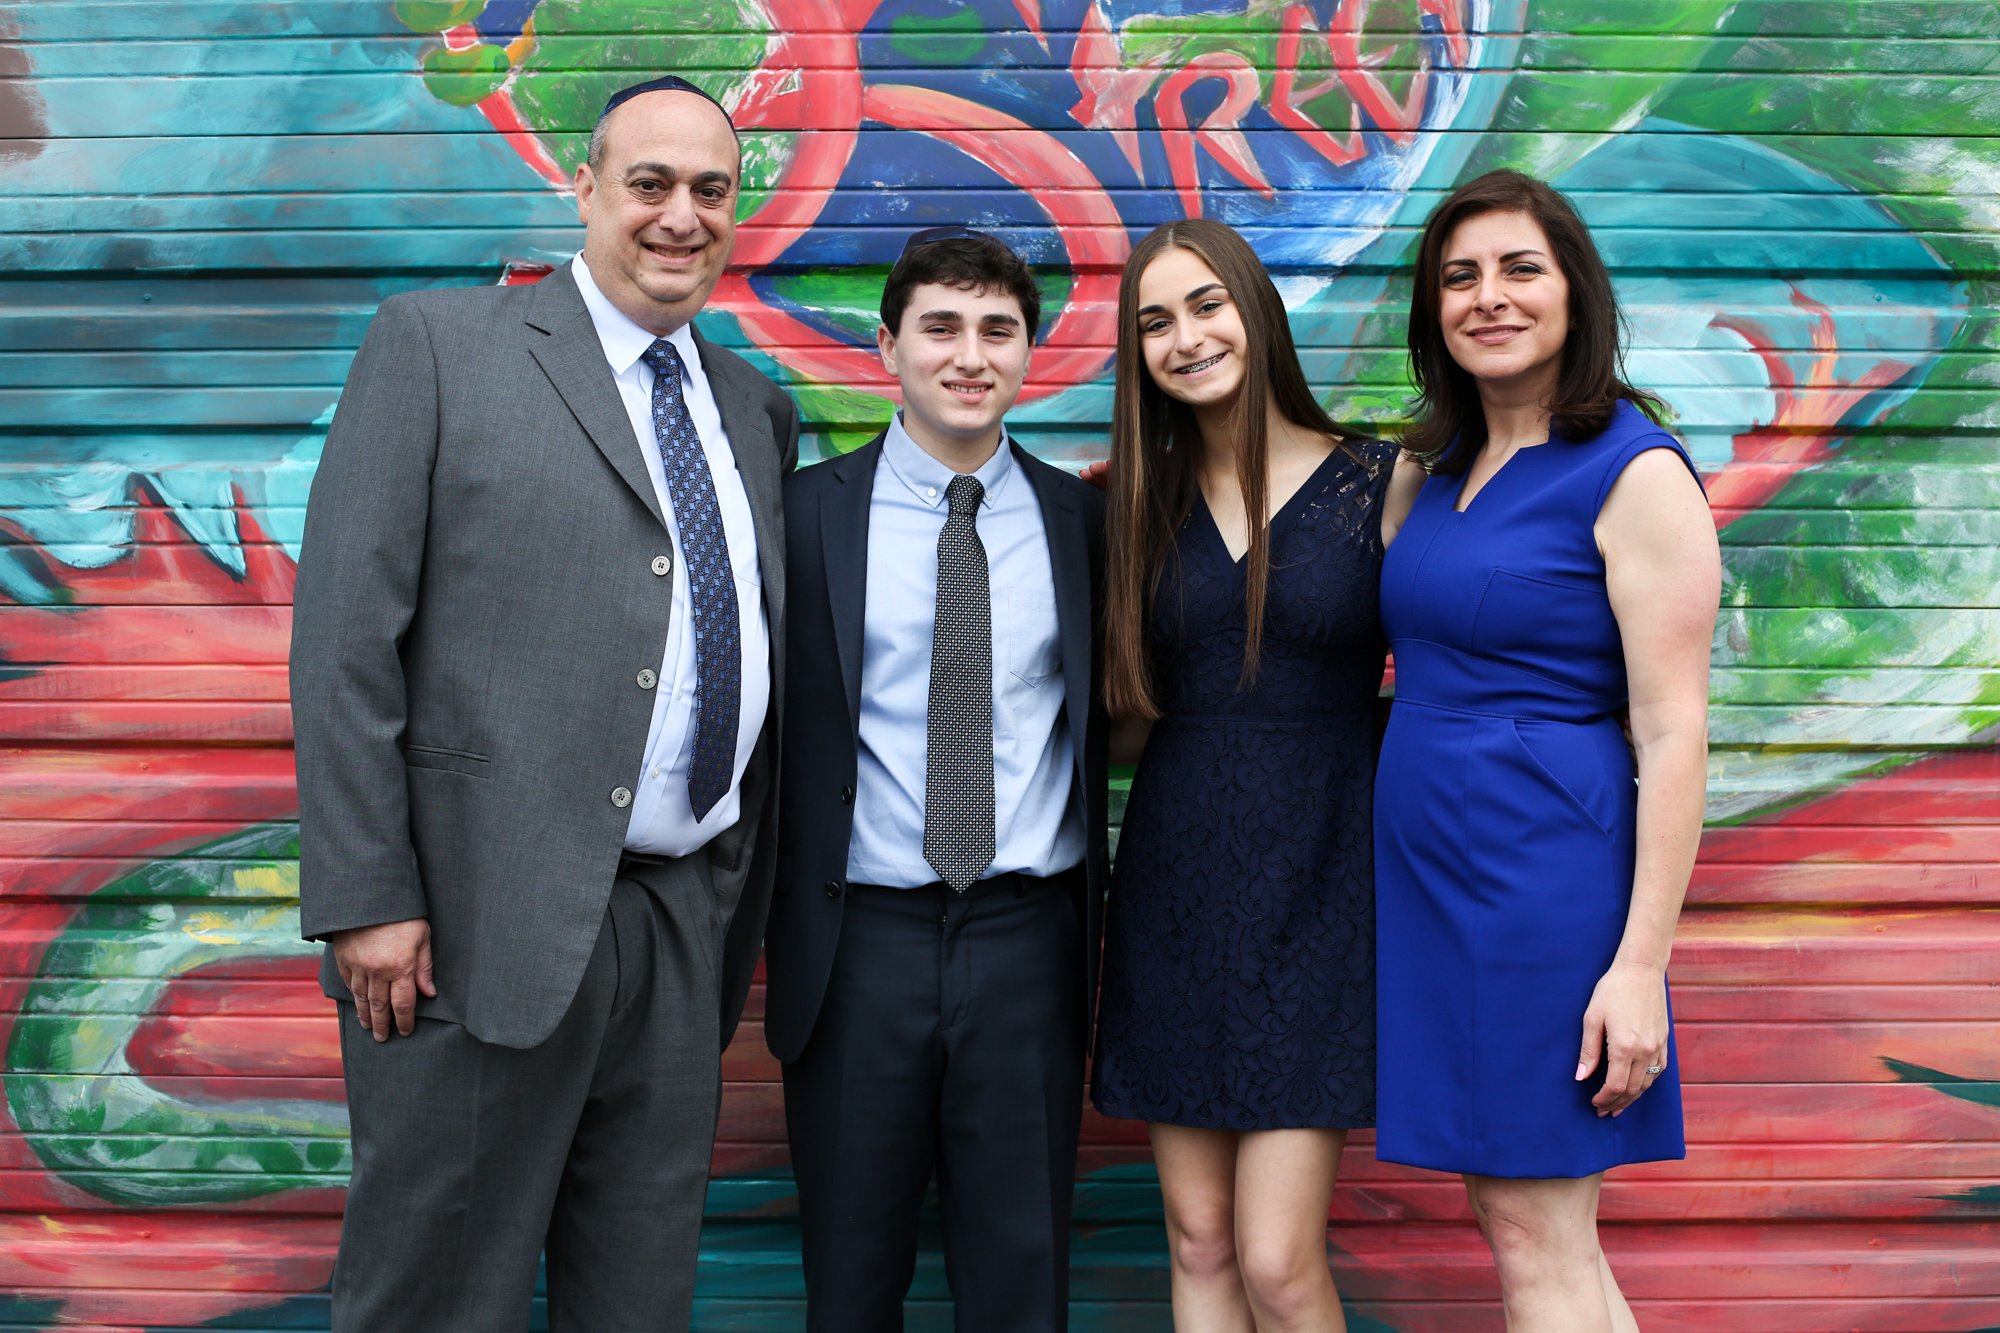 Max_Bar_Mitzvah_Preview (8 of 68).jpg